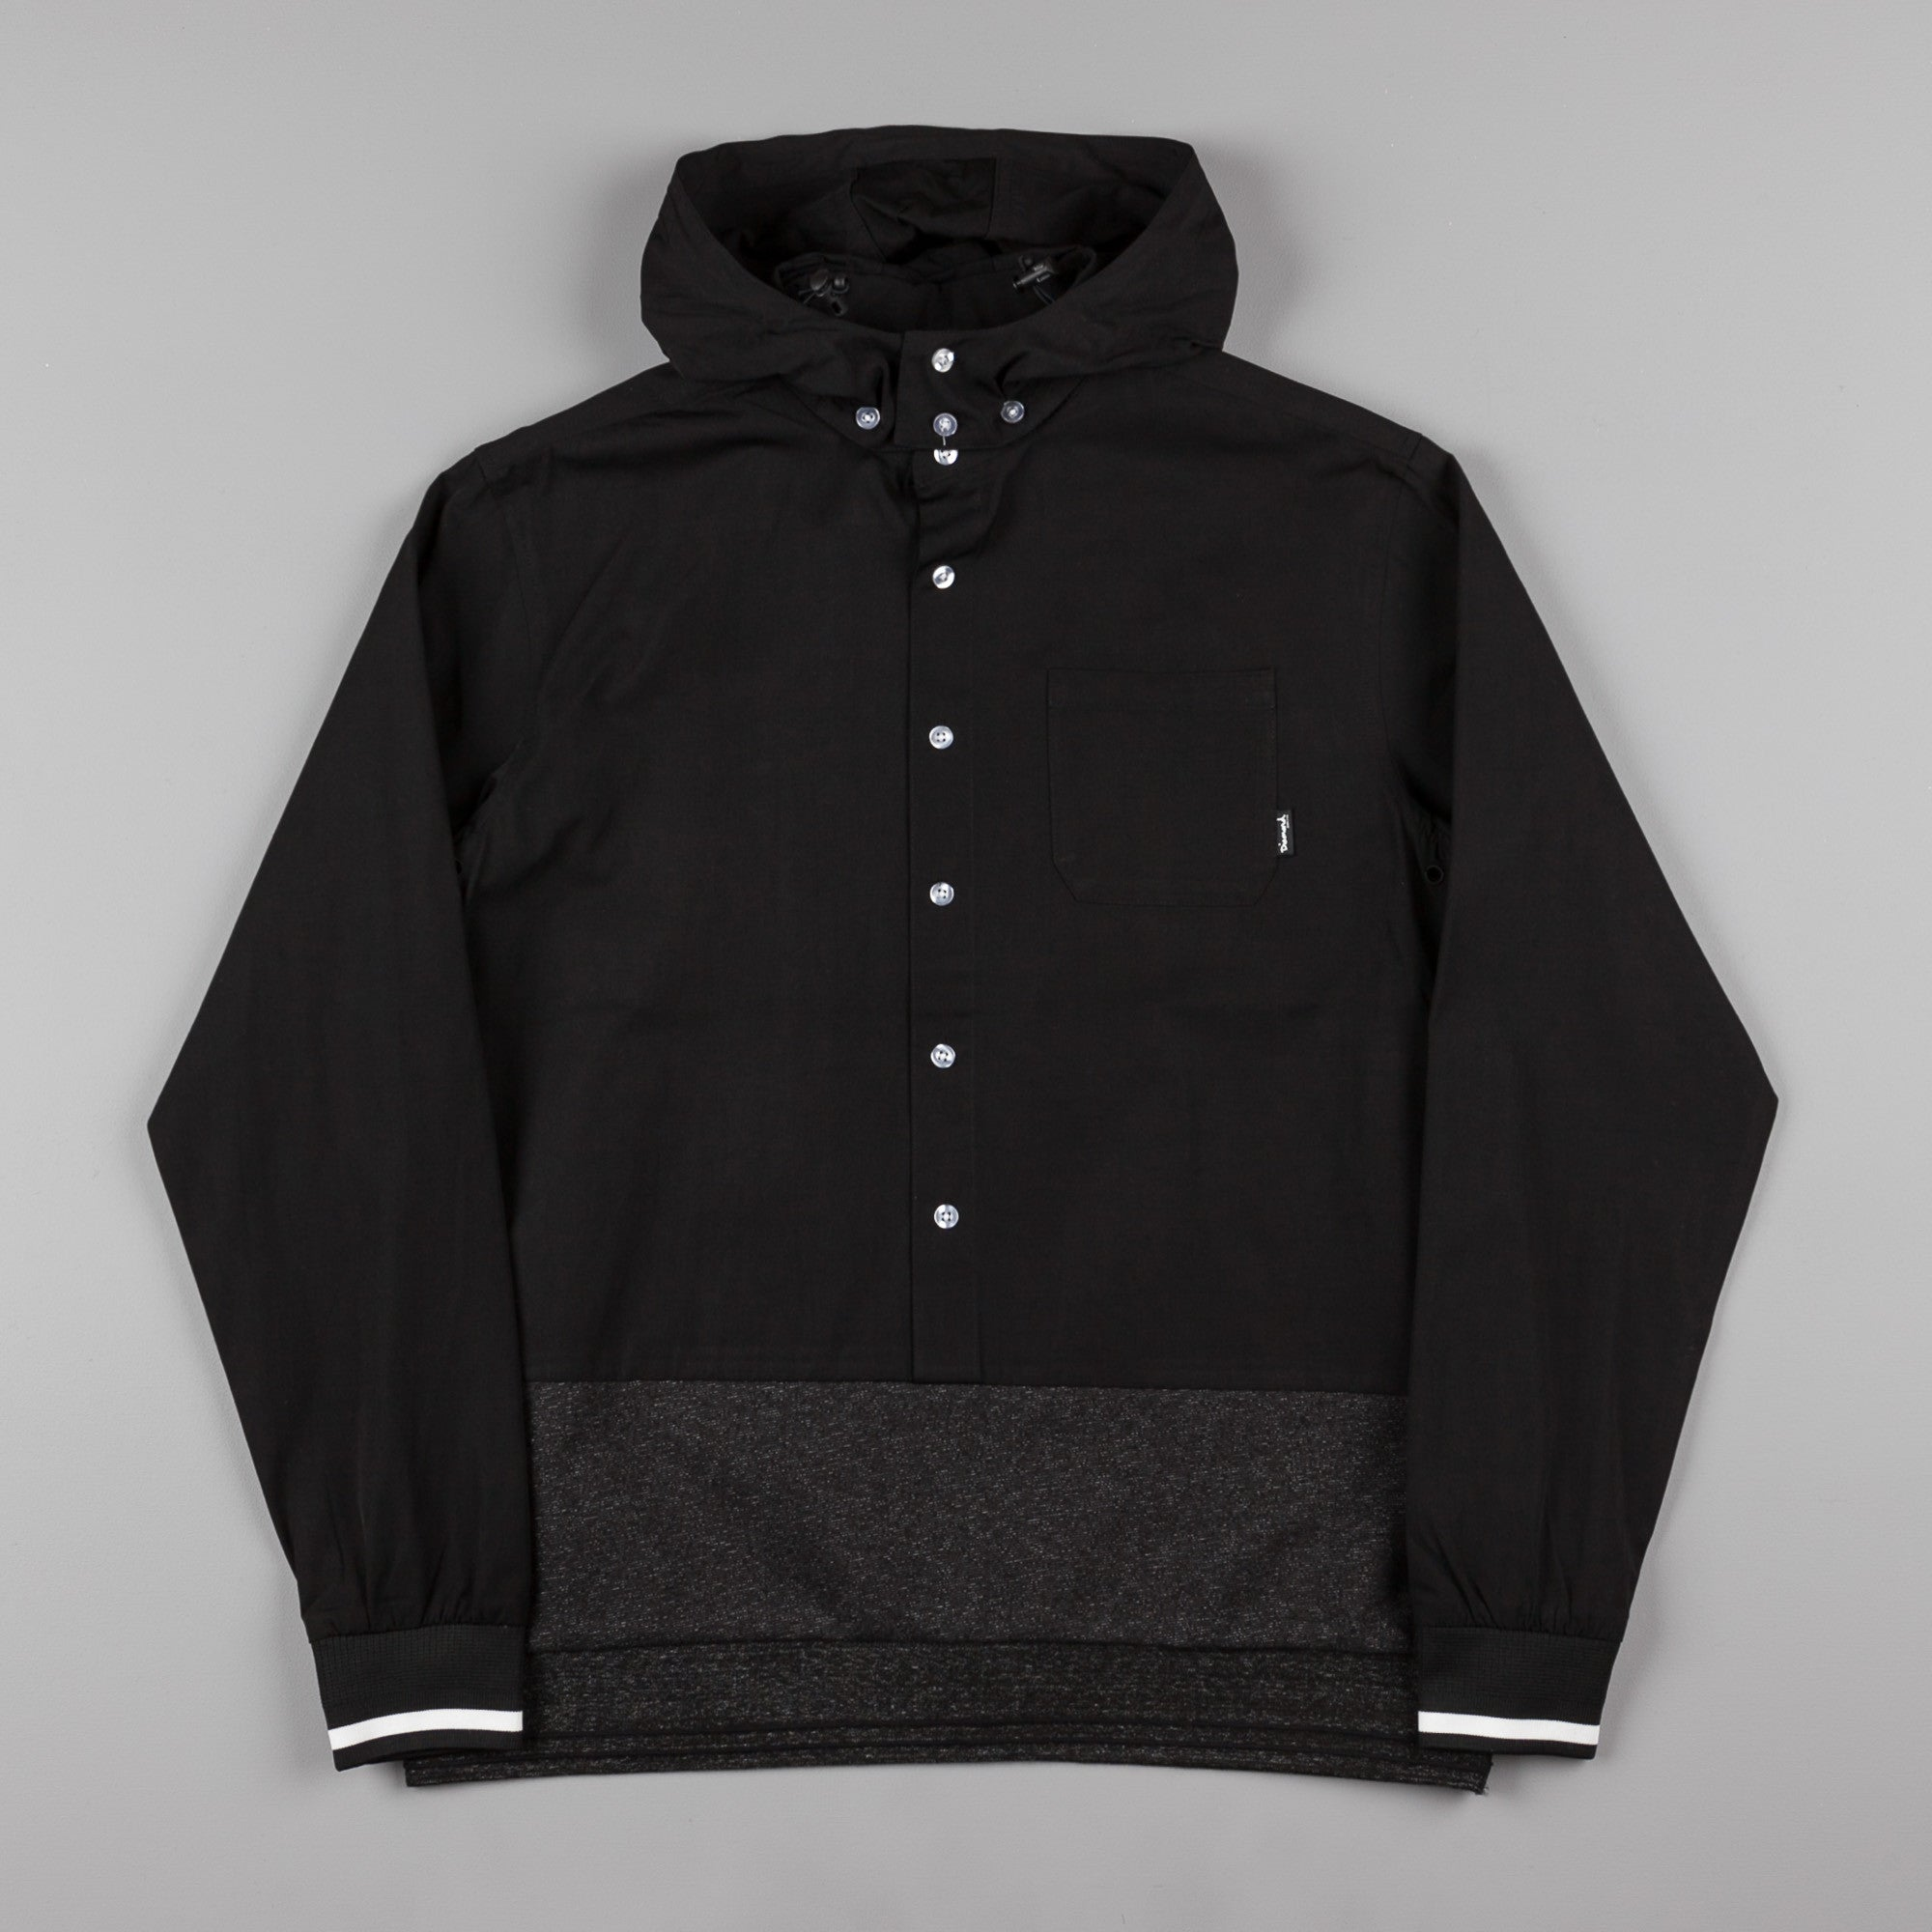 Diamond Blur Woven Pullover Jacket - Black